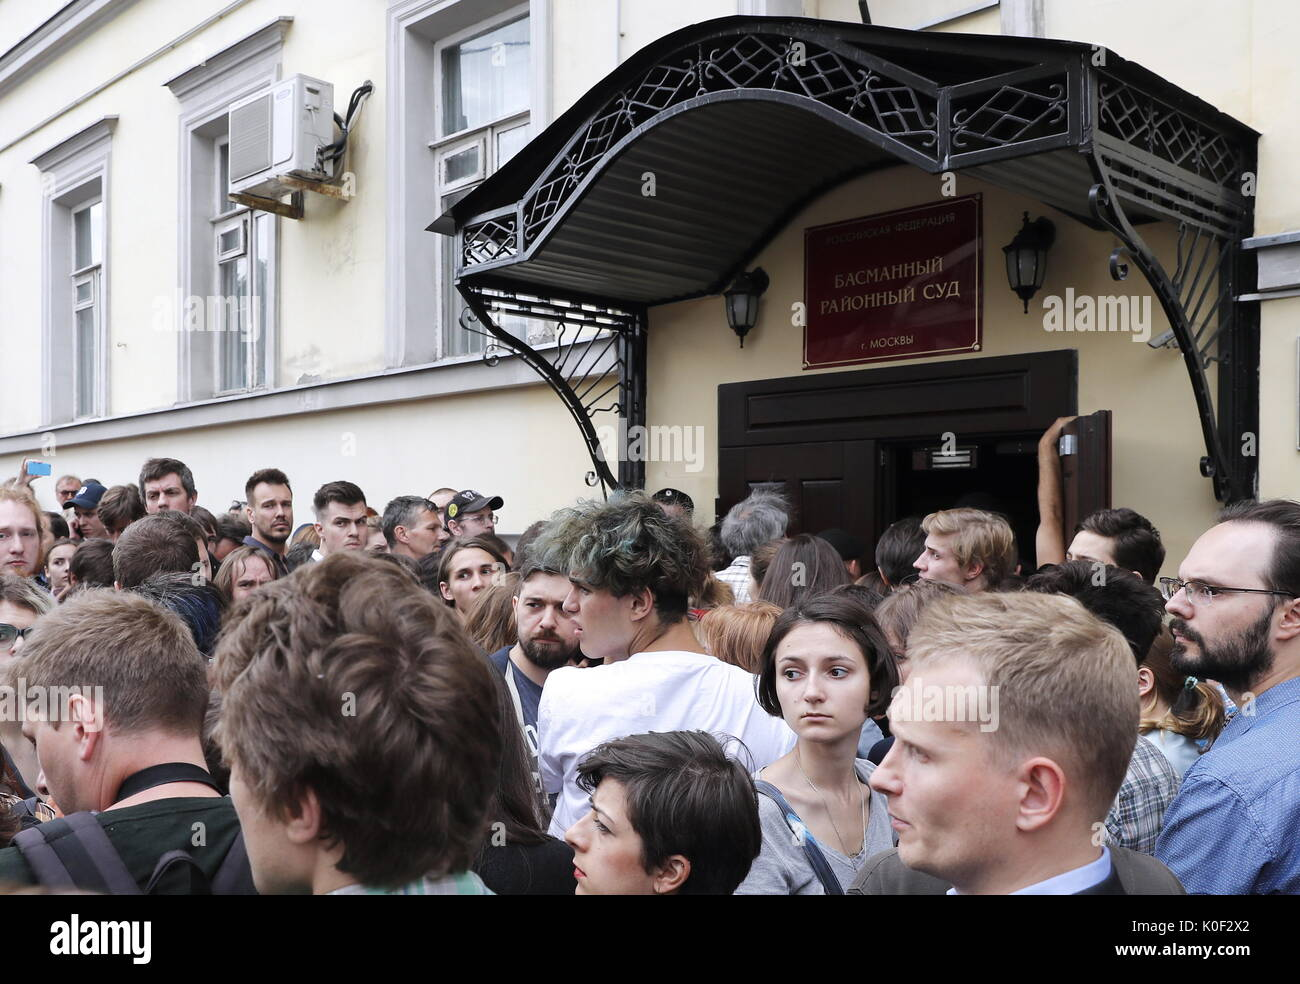 Moscow, Russia. 23rd Aug, 2017. People gather by Moscow's Basmanny District Court ahead of a hearing into theatre and film director Kirill Serebrennikov' case. On August 22, 2017, Serebrennikov was detained on fraud charges; he is accused of embezzling 68 million roubles ($1.1 million) of state funding allocated for the Platforma theatre project between 2011 and 2014. Artyom Geodakyan/TASS - Stock Image